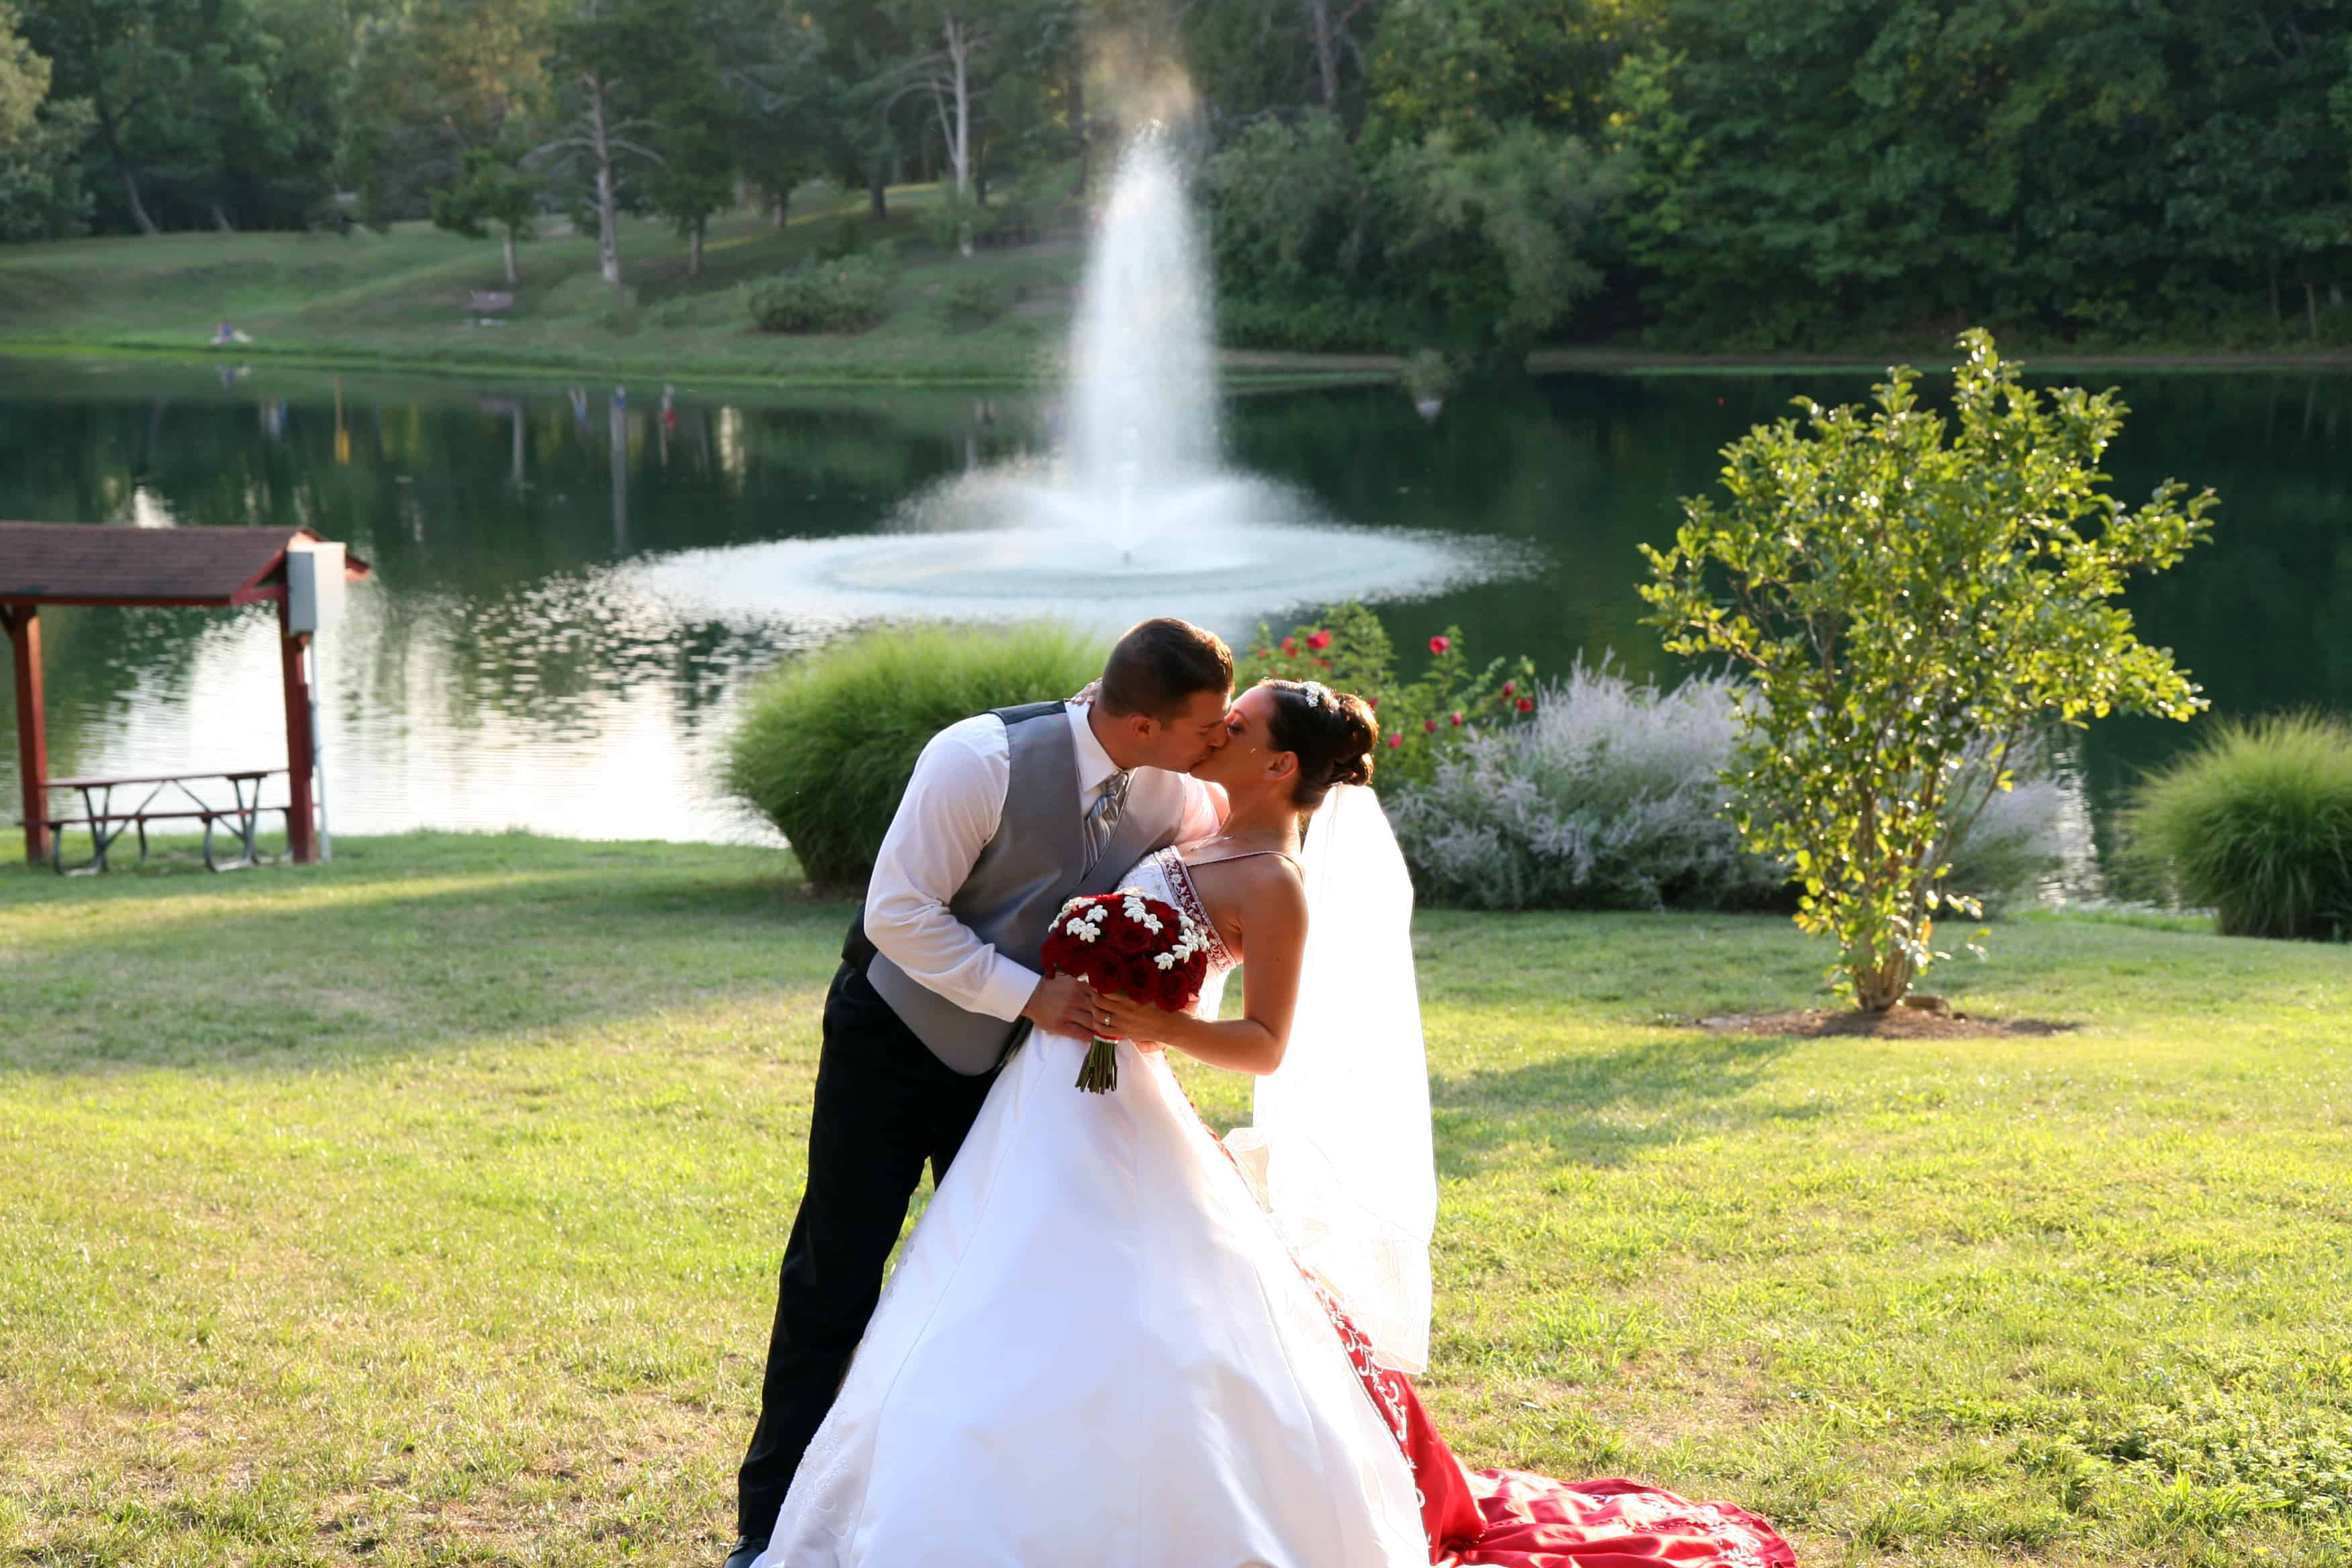 cool kiss with fountain behind